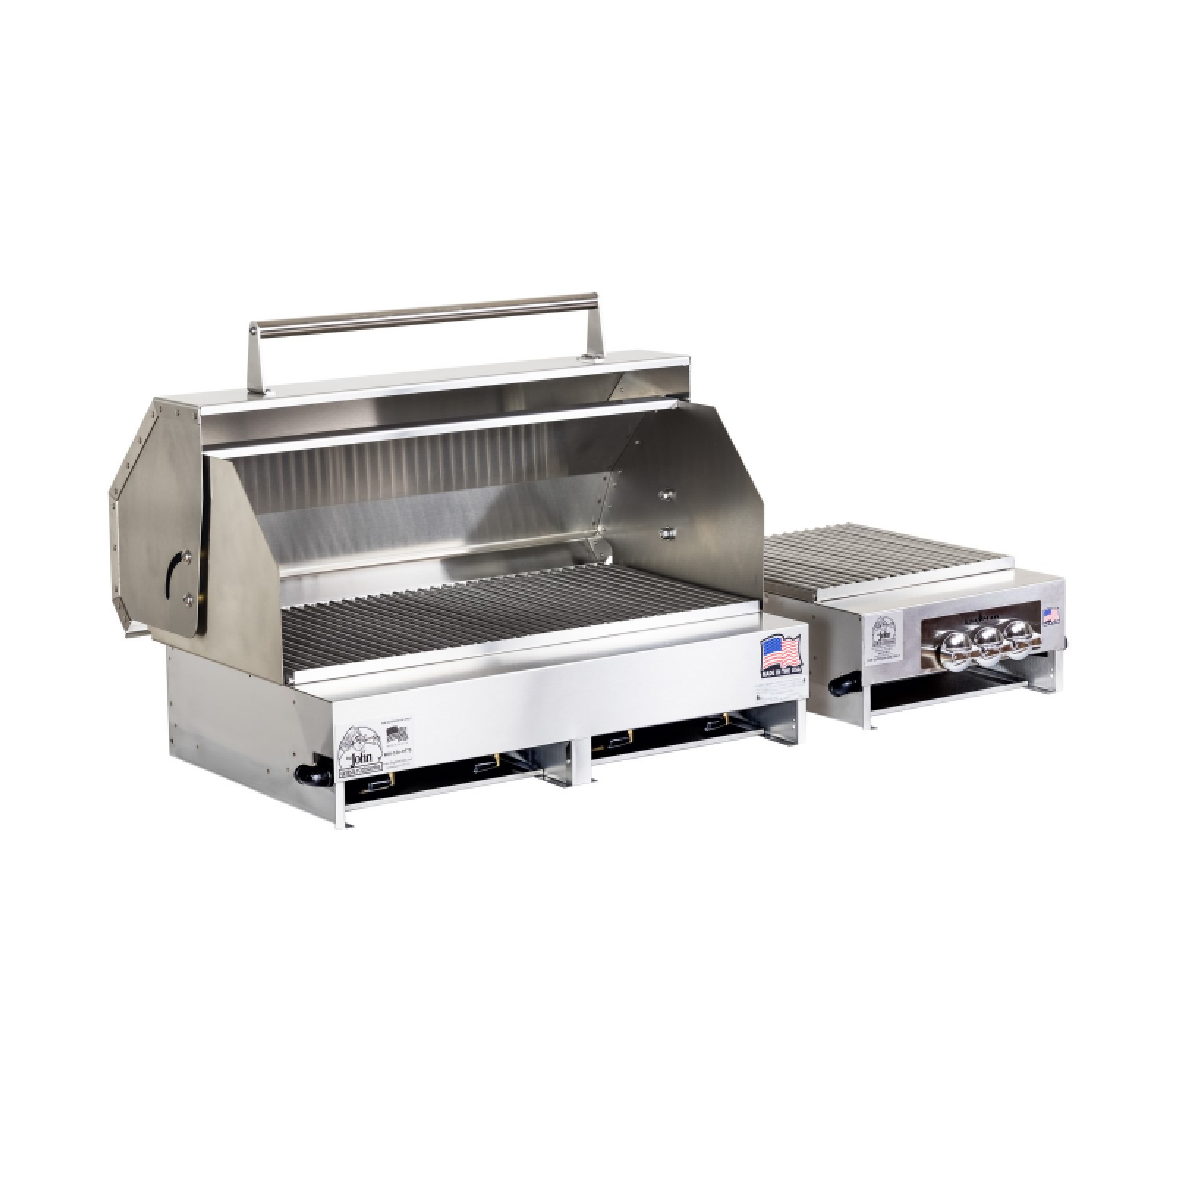 "33"" Stainless Steel Grill with Hood at Side Burner"